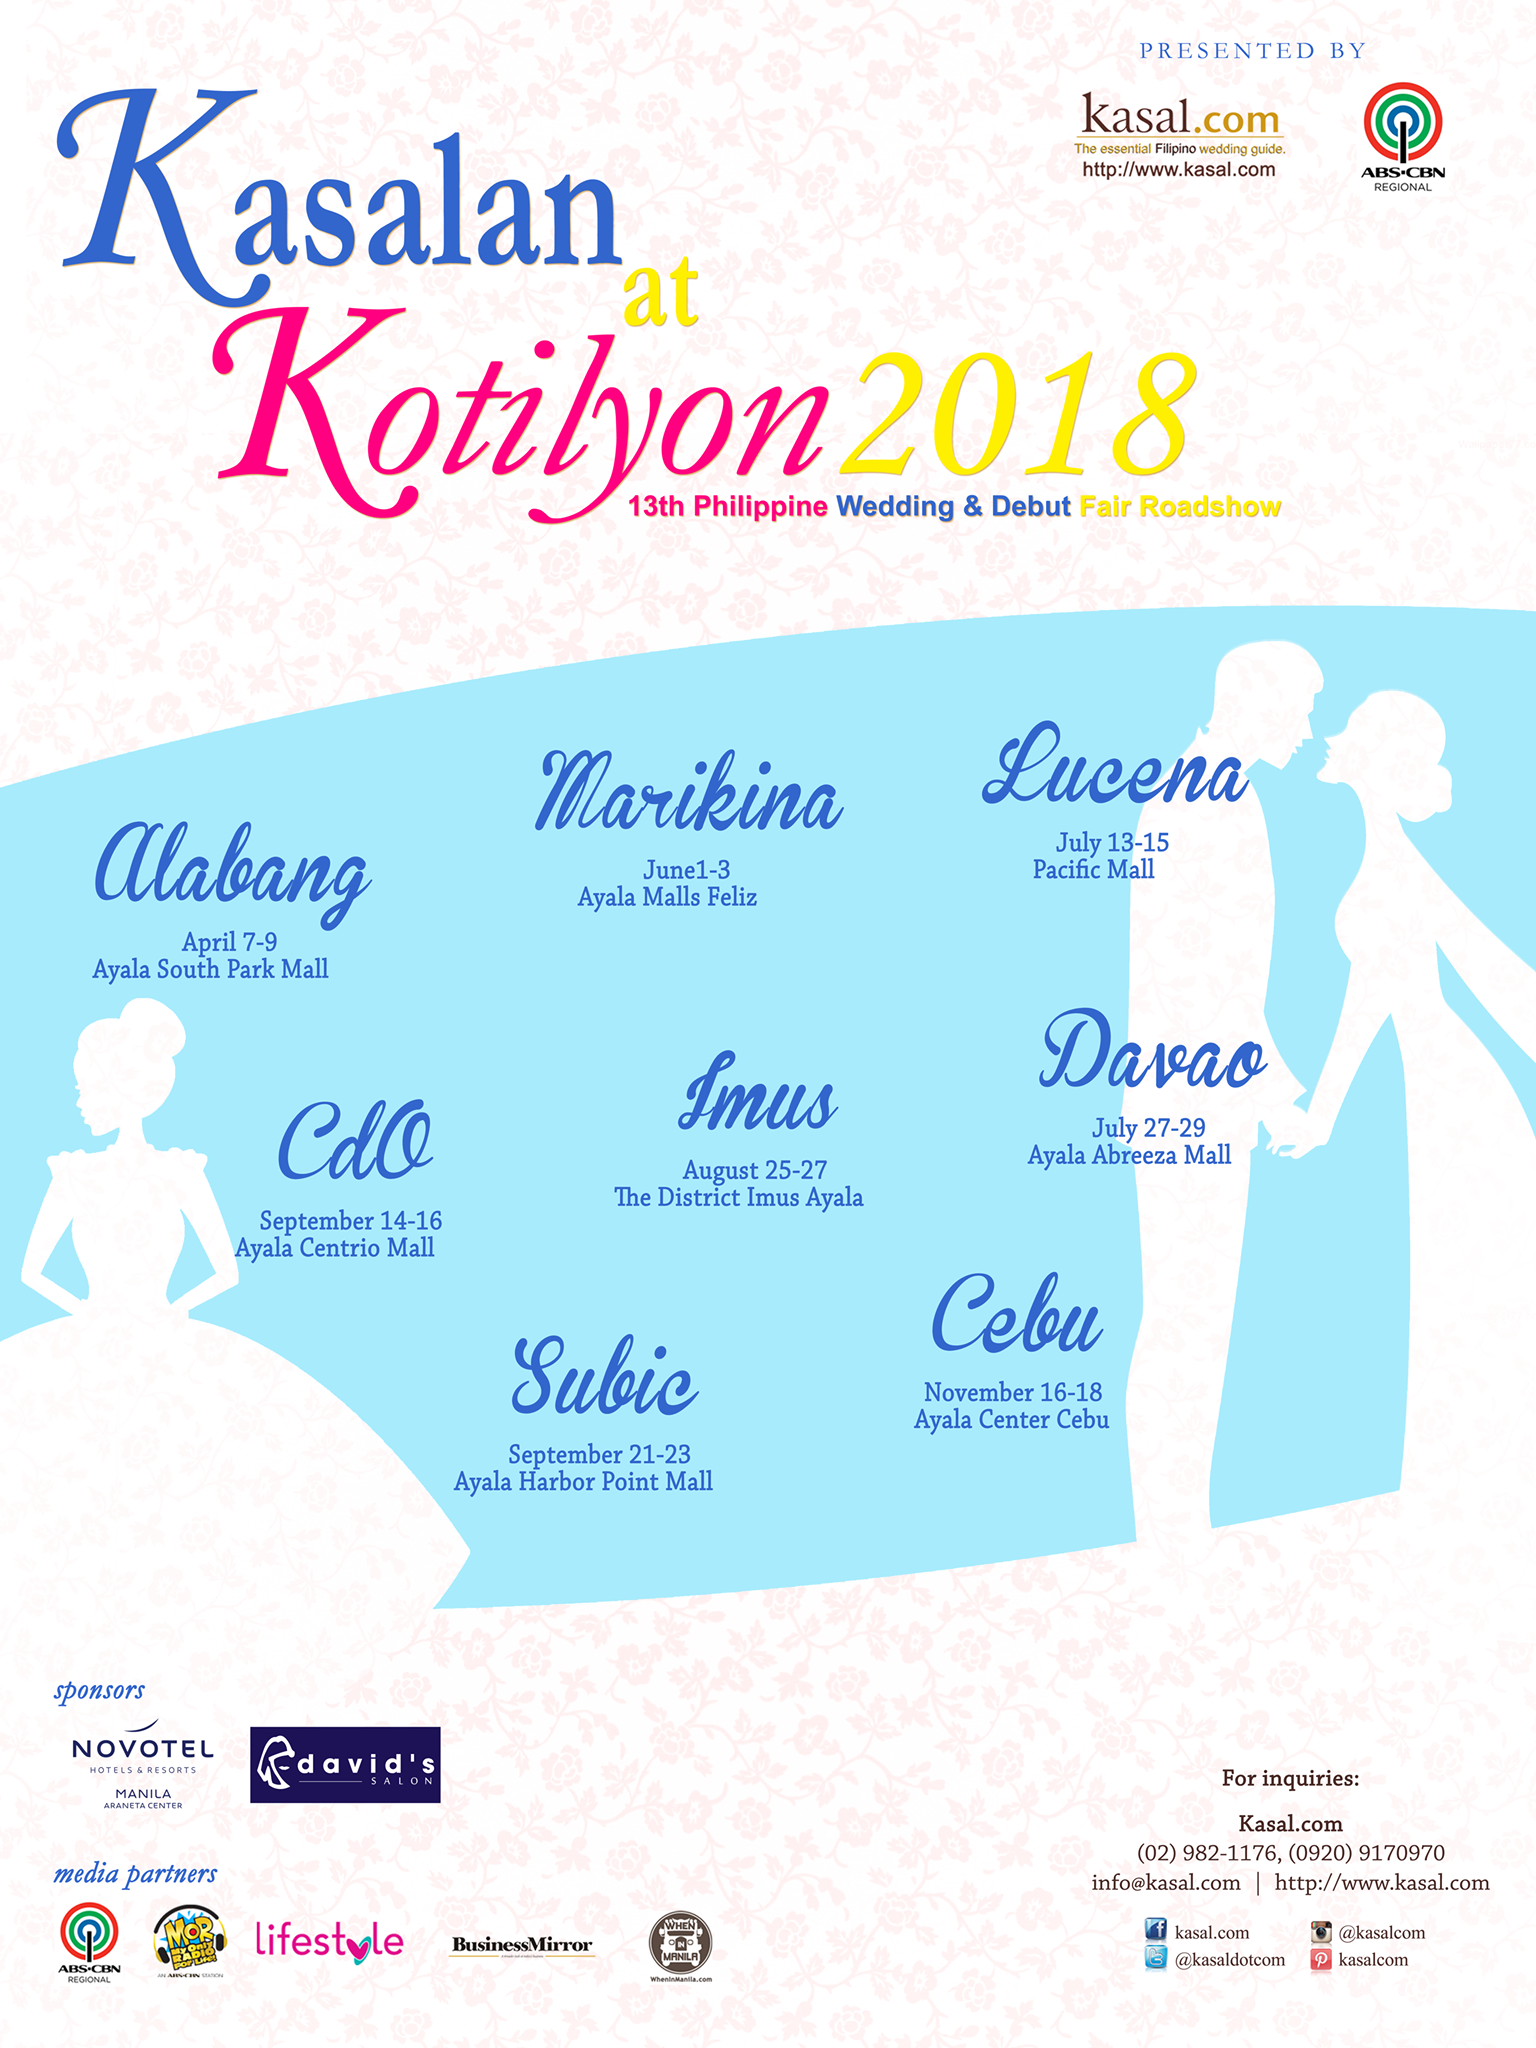 kasalan at kotilyon 2018 official poster